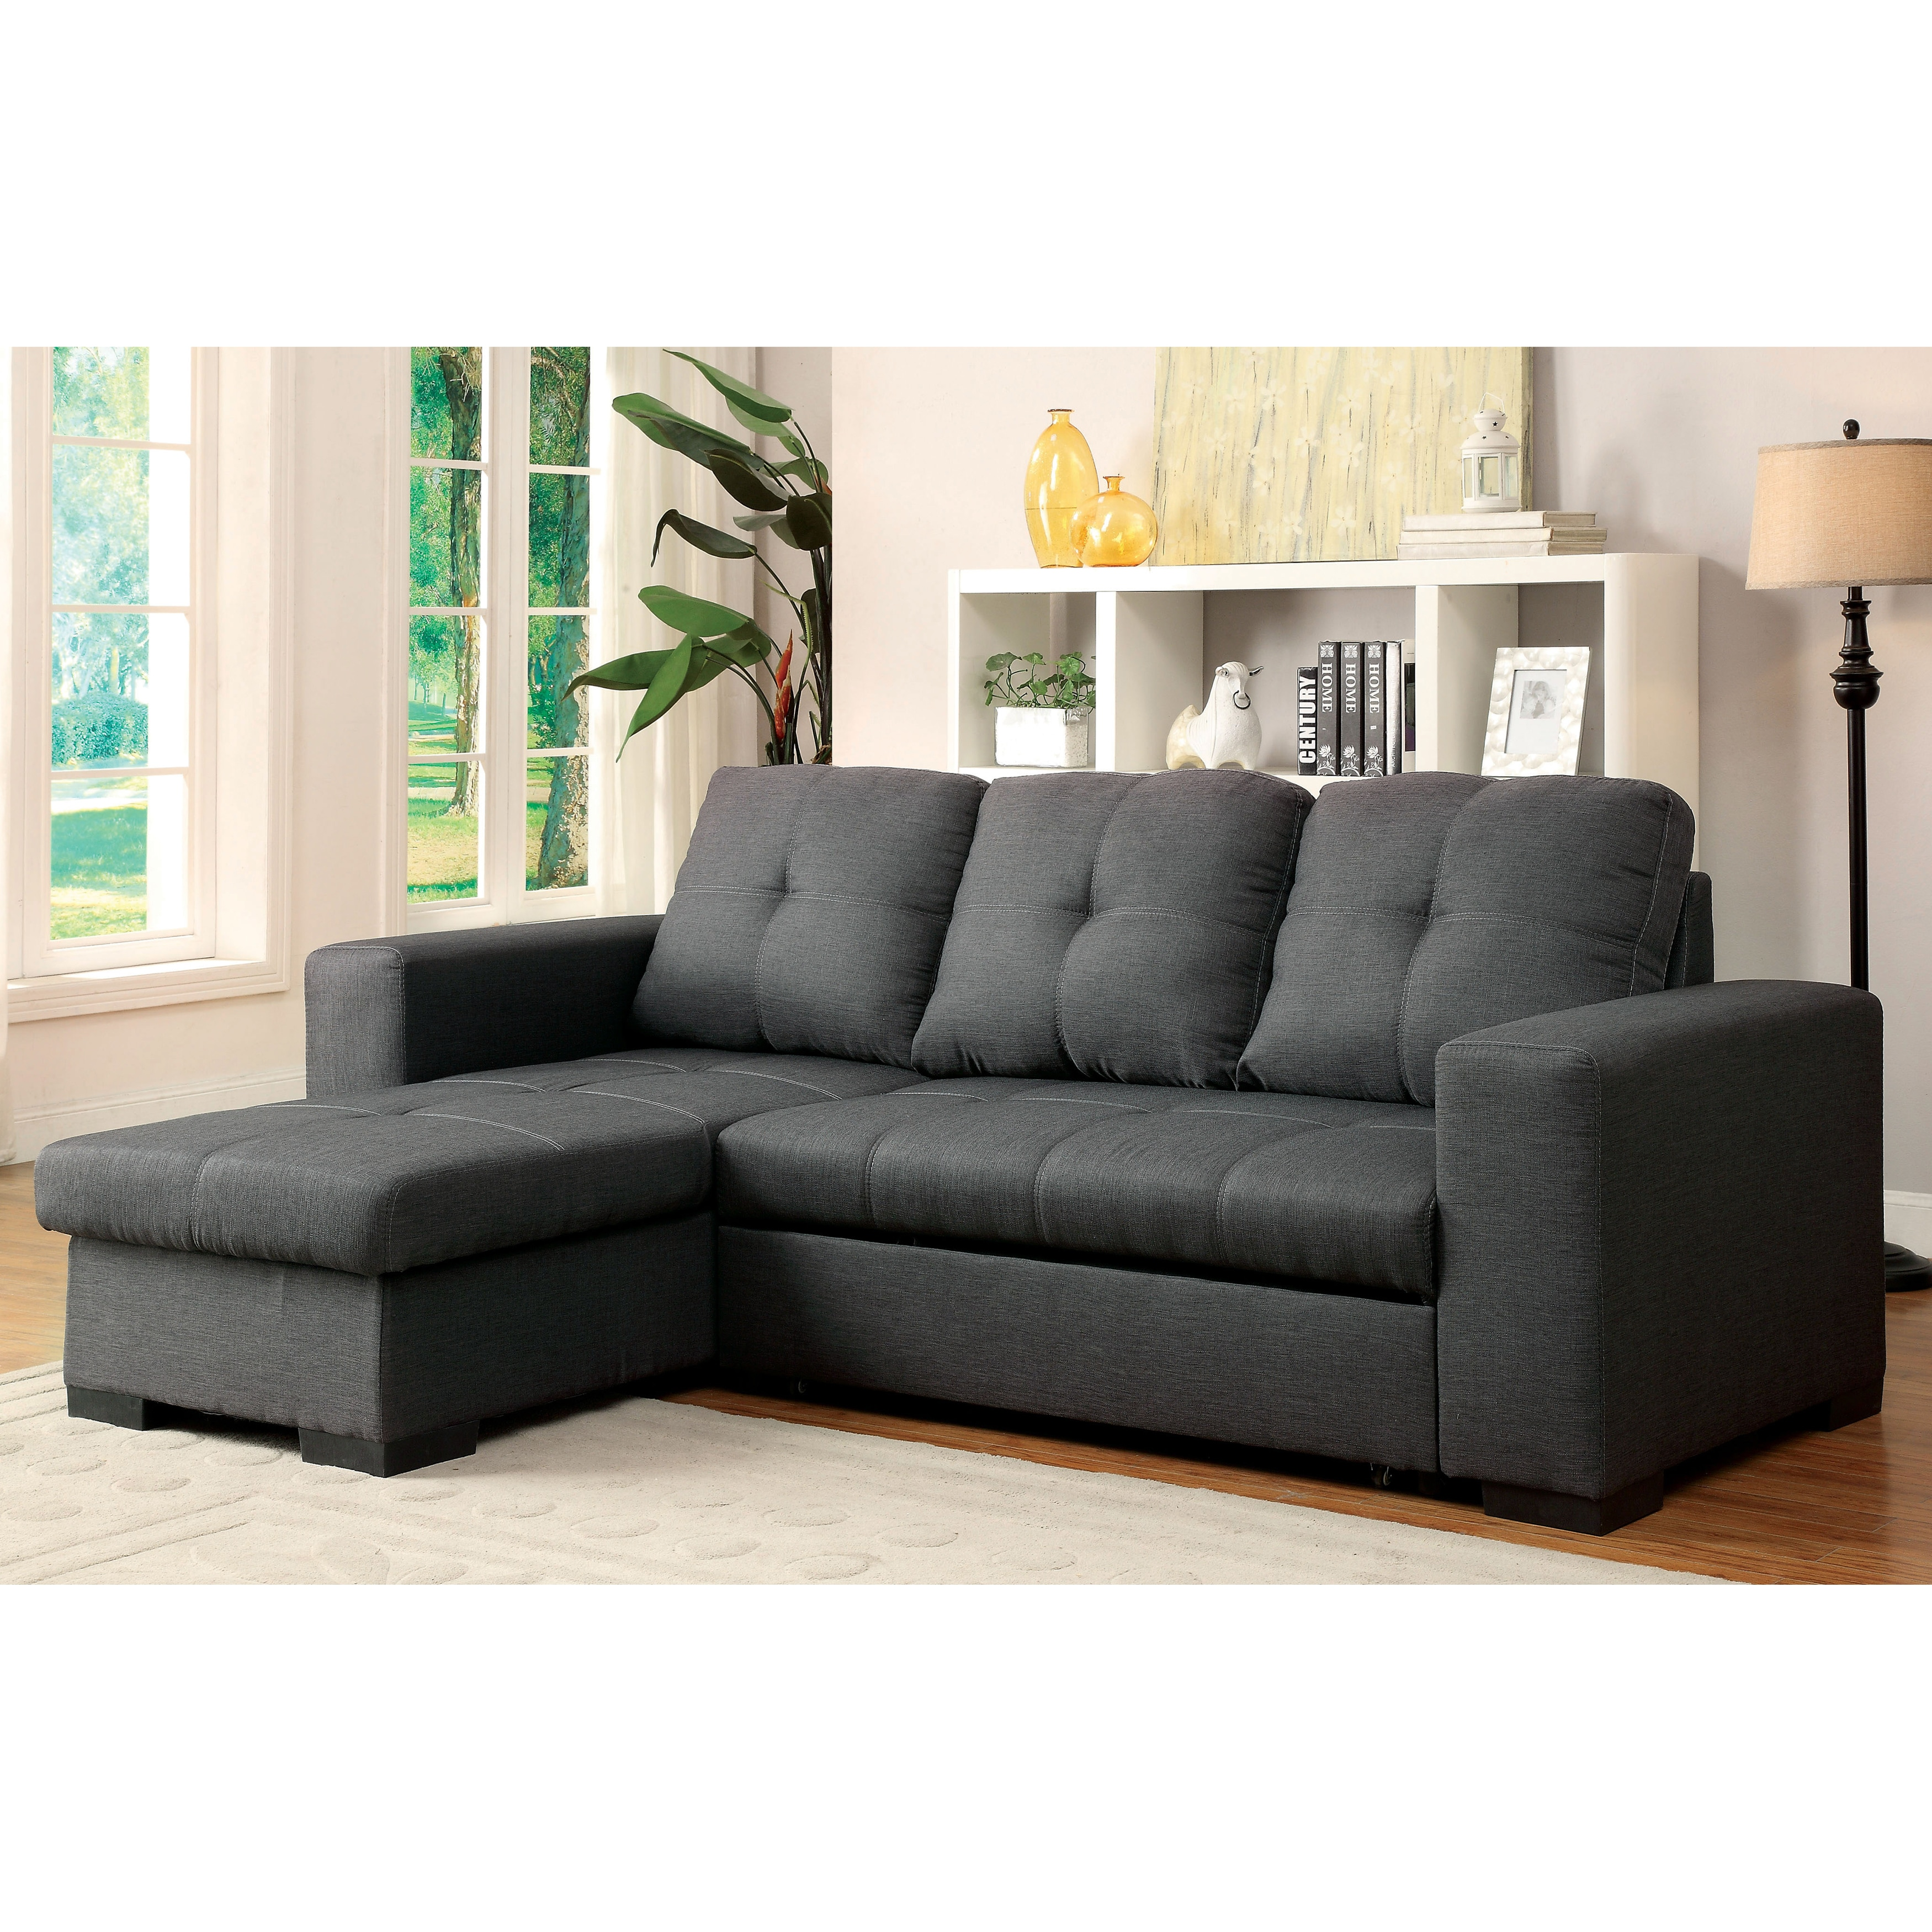 Grey Sectional Sofas Online At Our Best Living Room Furniture Deals